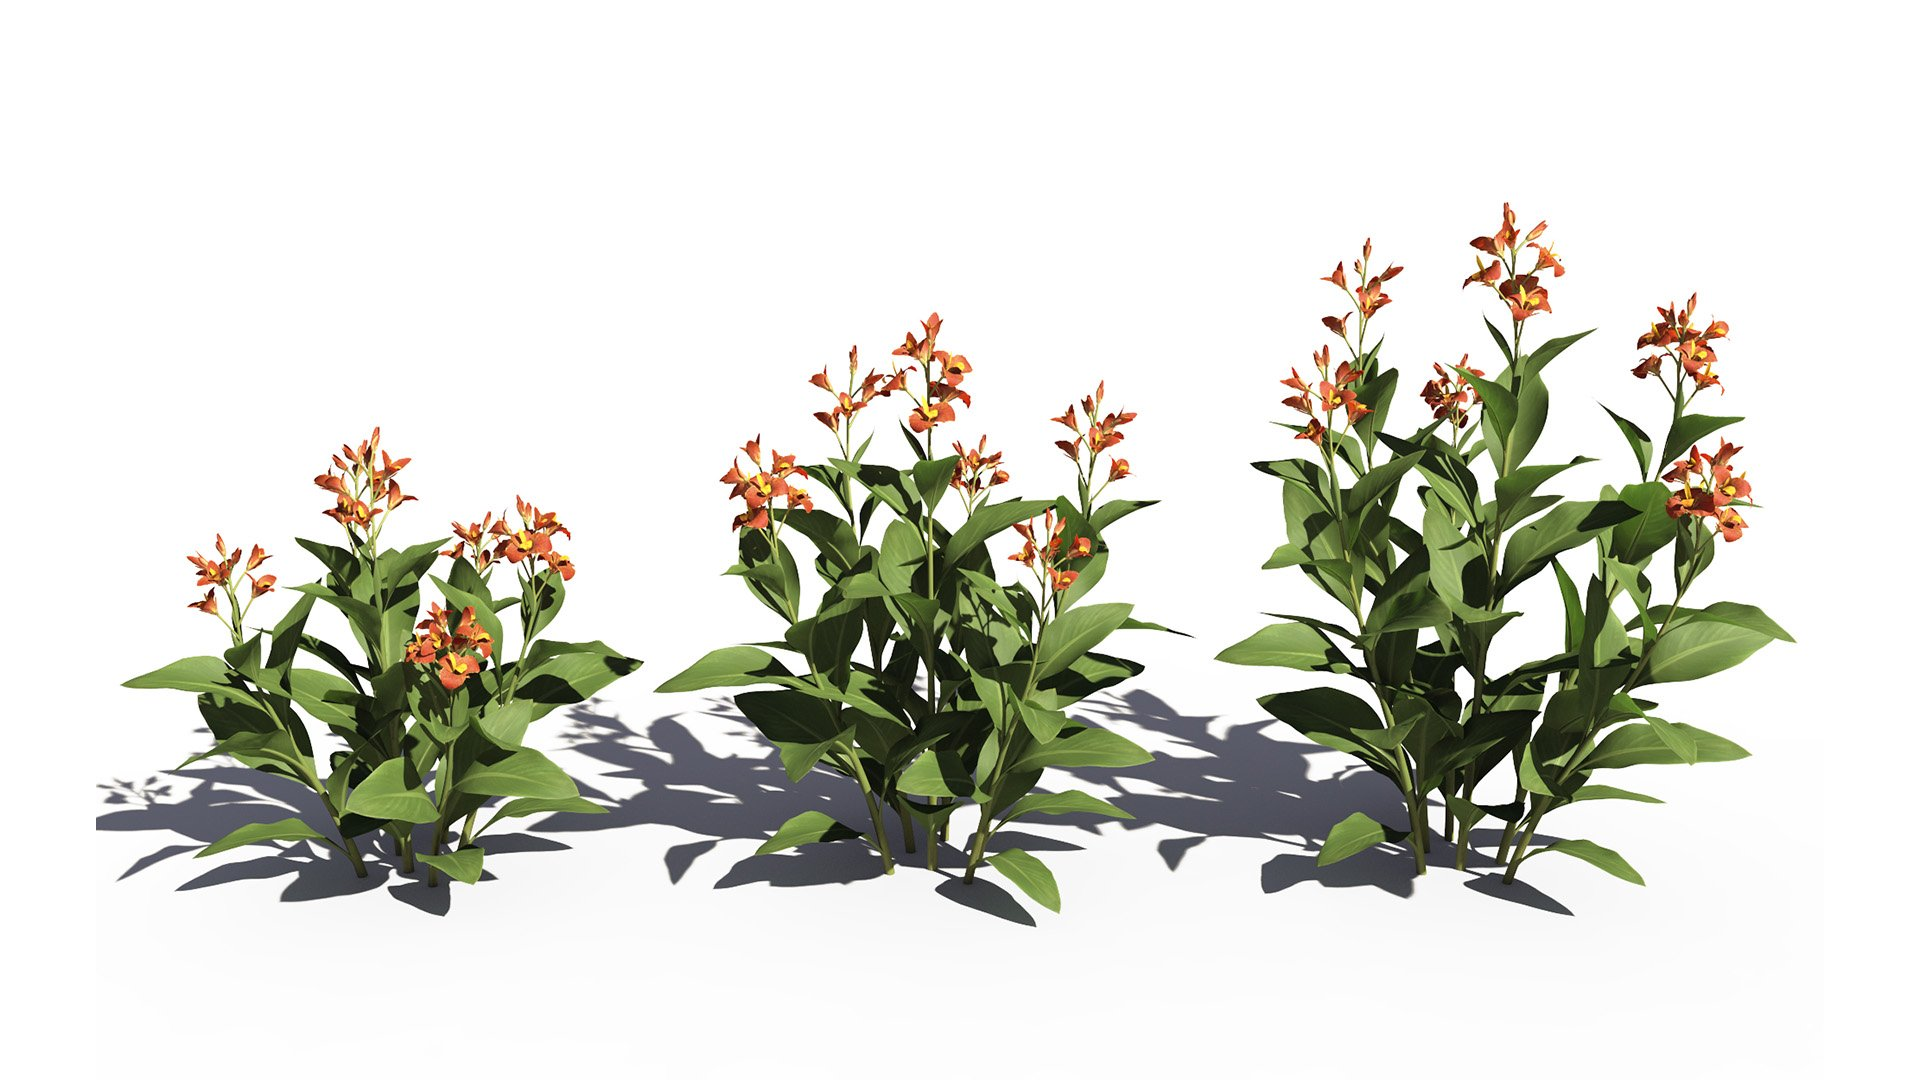 3D model of the Canna lily Canna x generalis orange